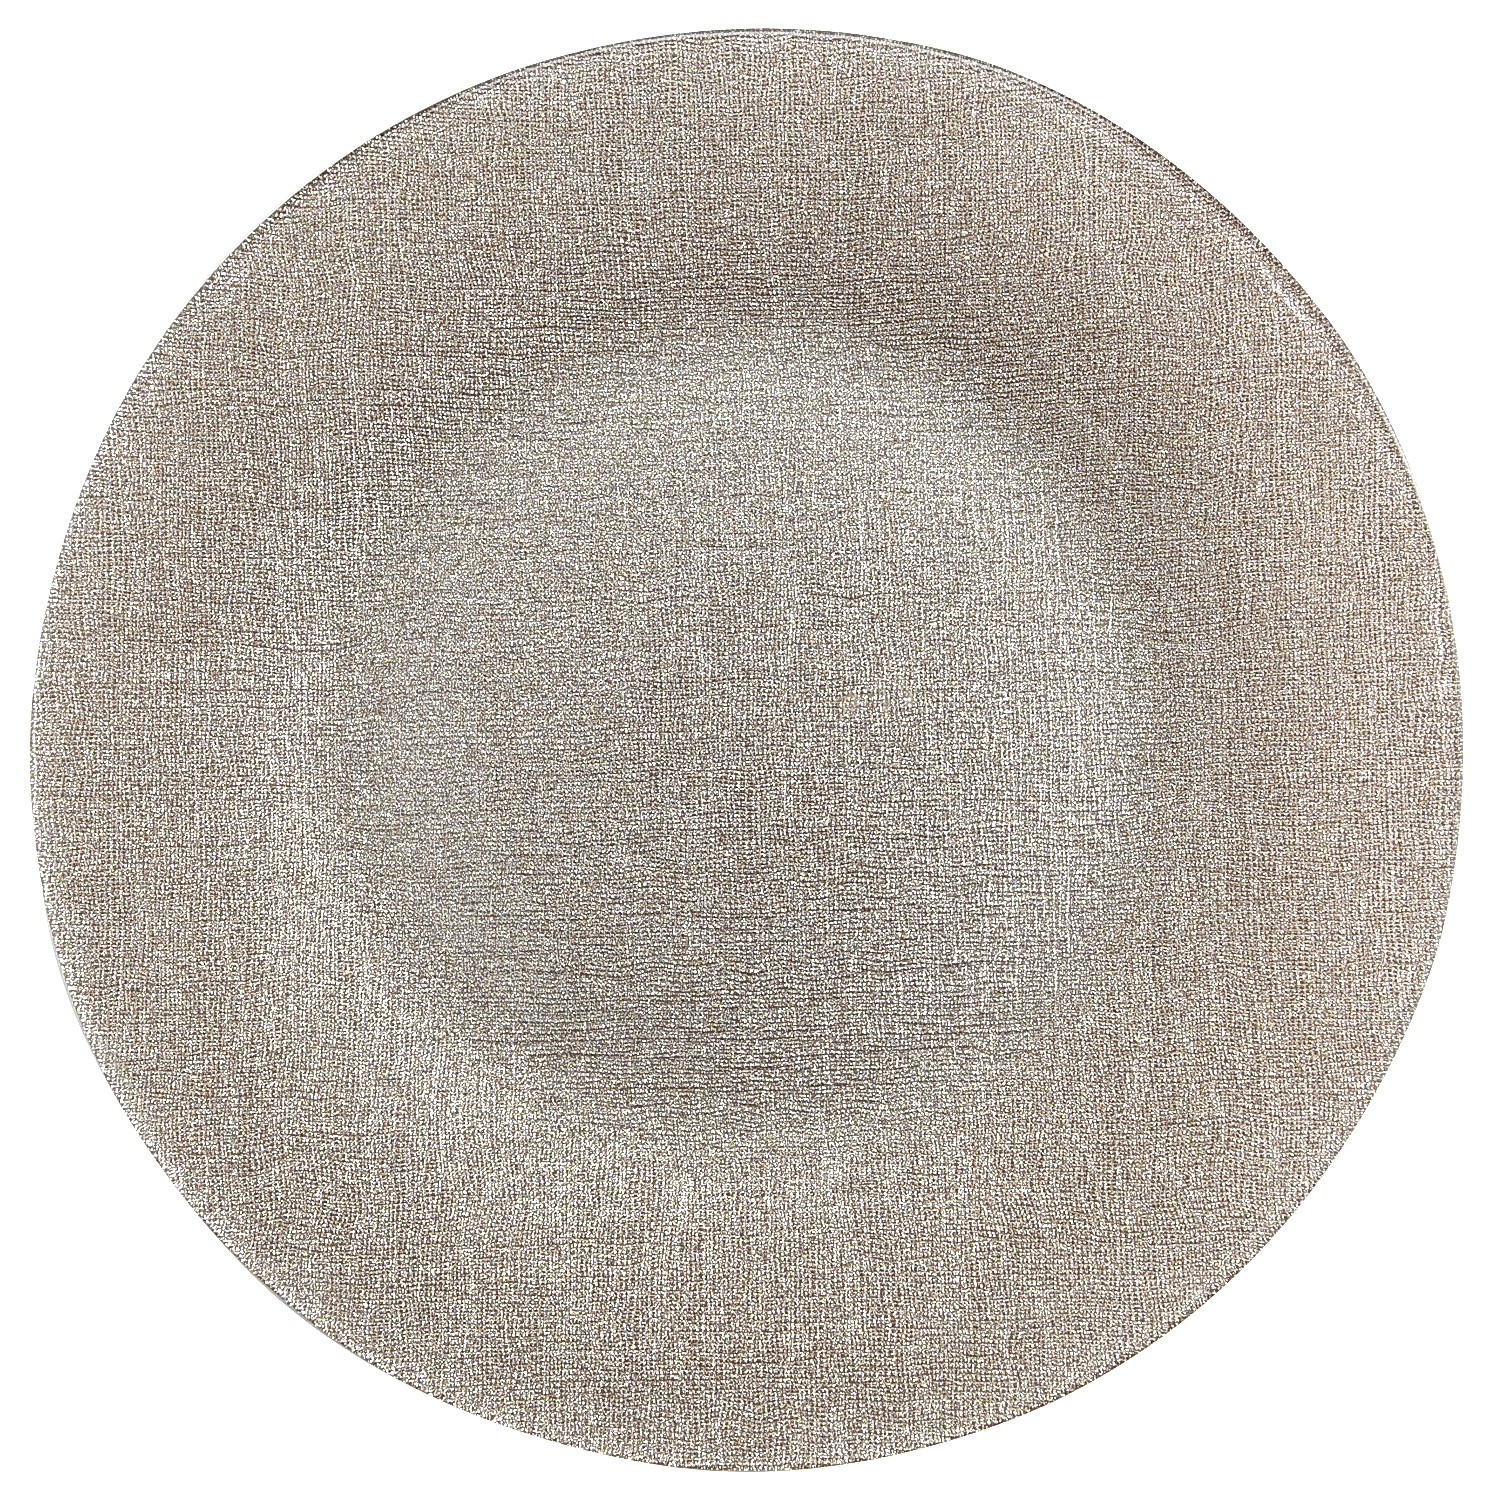 Champagne Glitter Glass Charger Plate